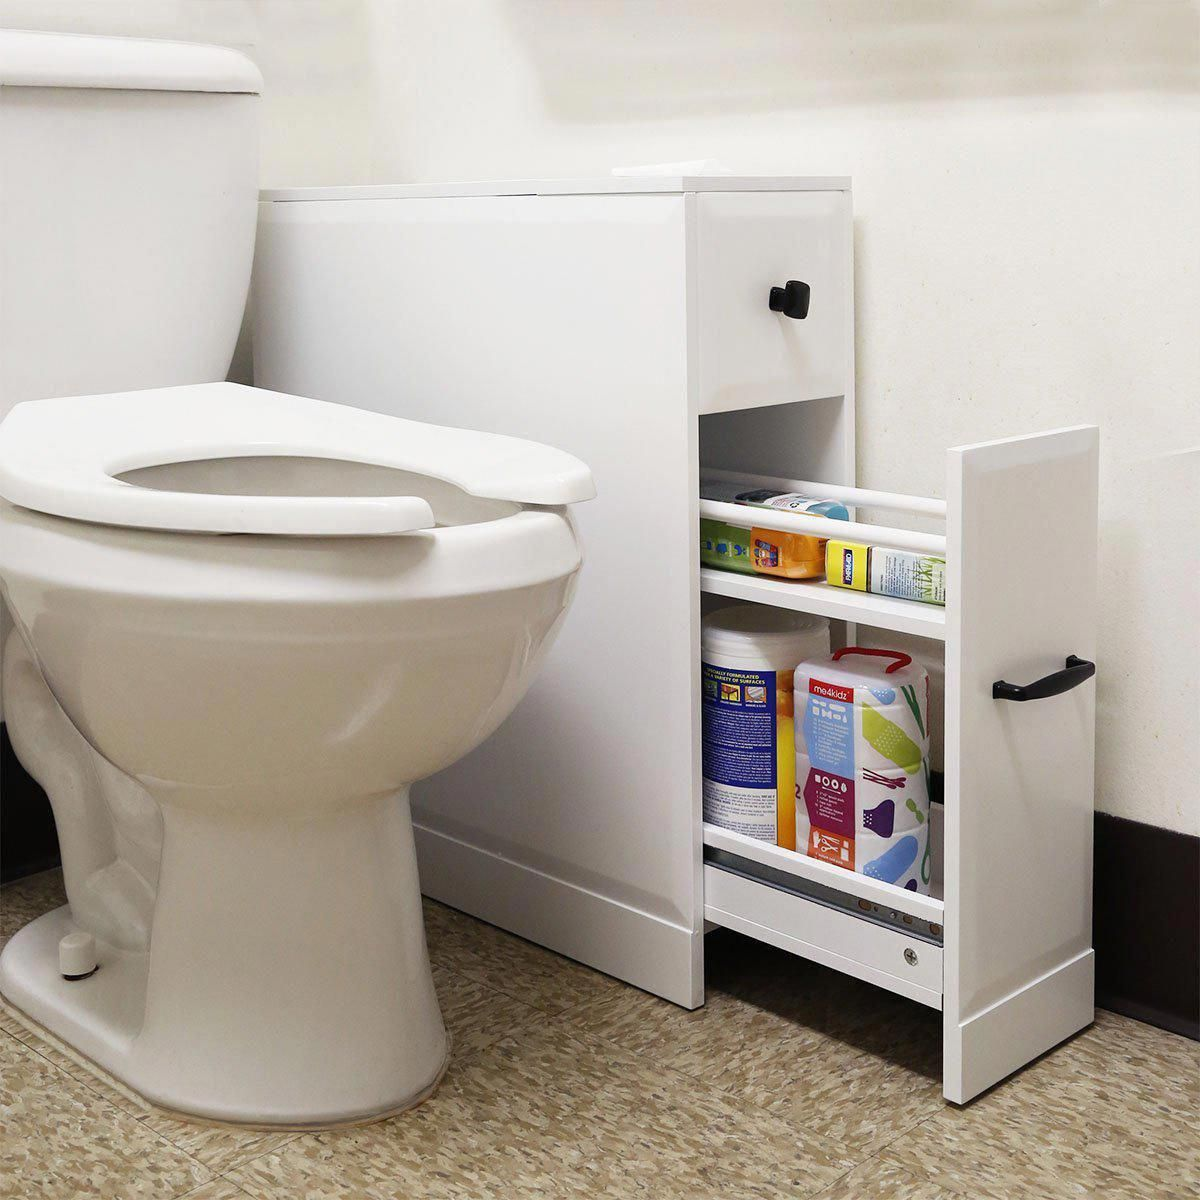 The Slide Out Bathroom Floor Cabinet With A Narrow Footprint But Large Capacity That A In 2020 Diy Bathroom Storage Free Standing Toilet Paper Holder Bathroom Storage